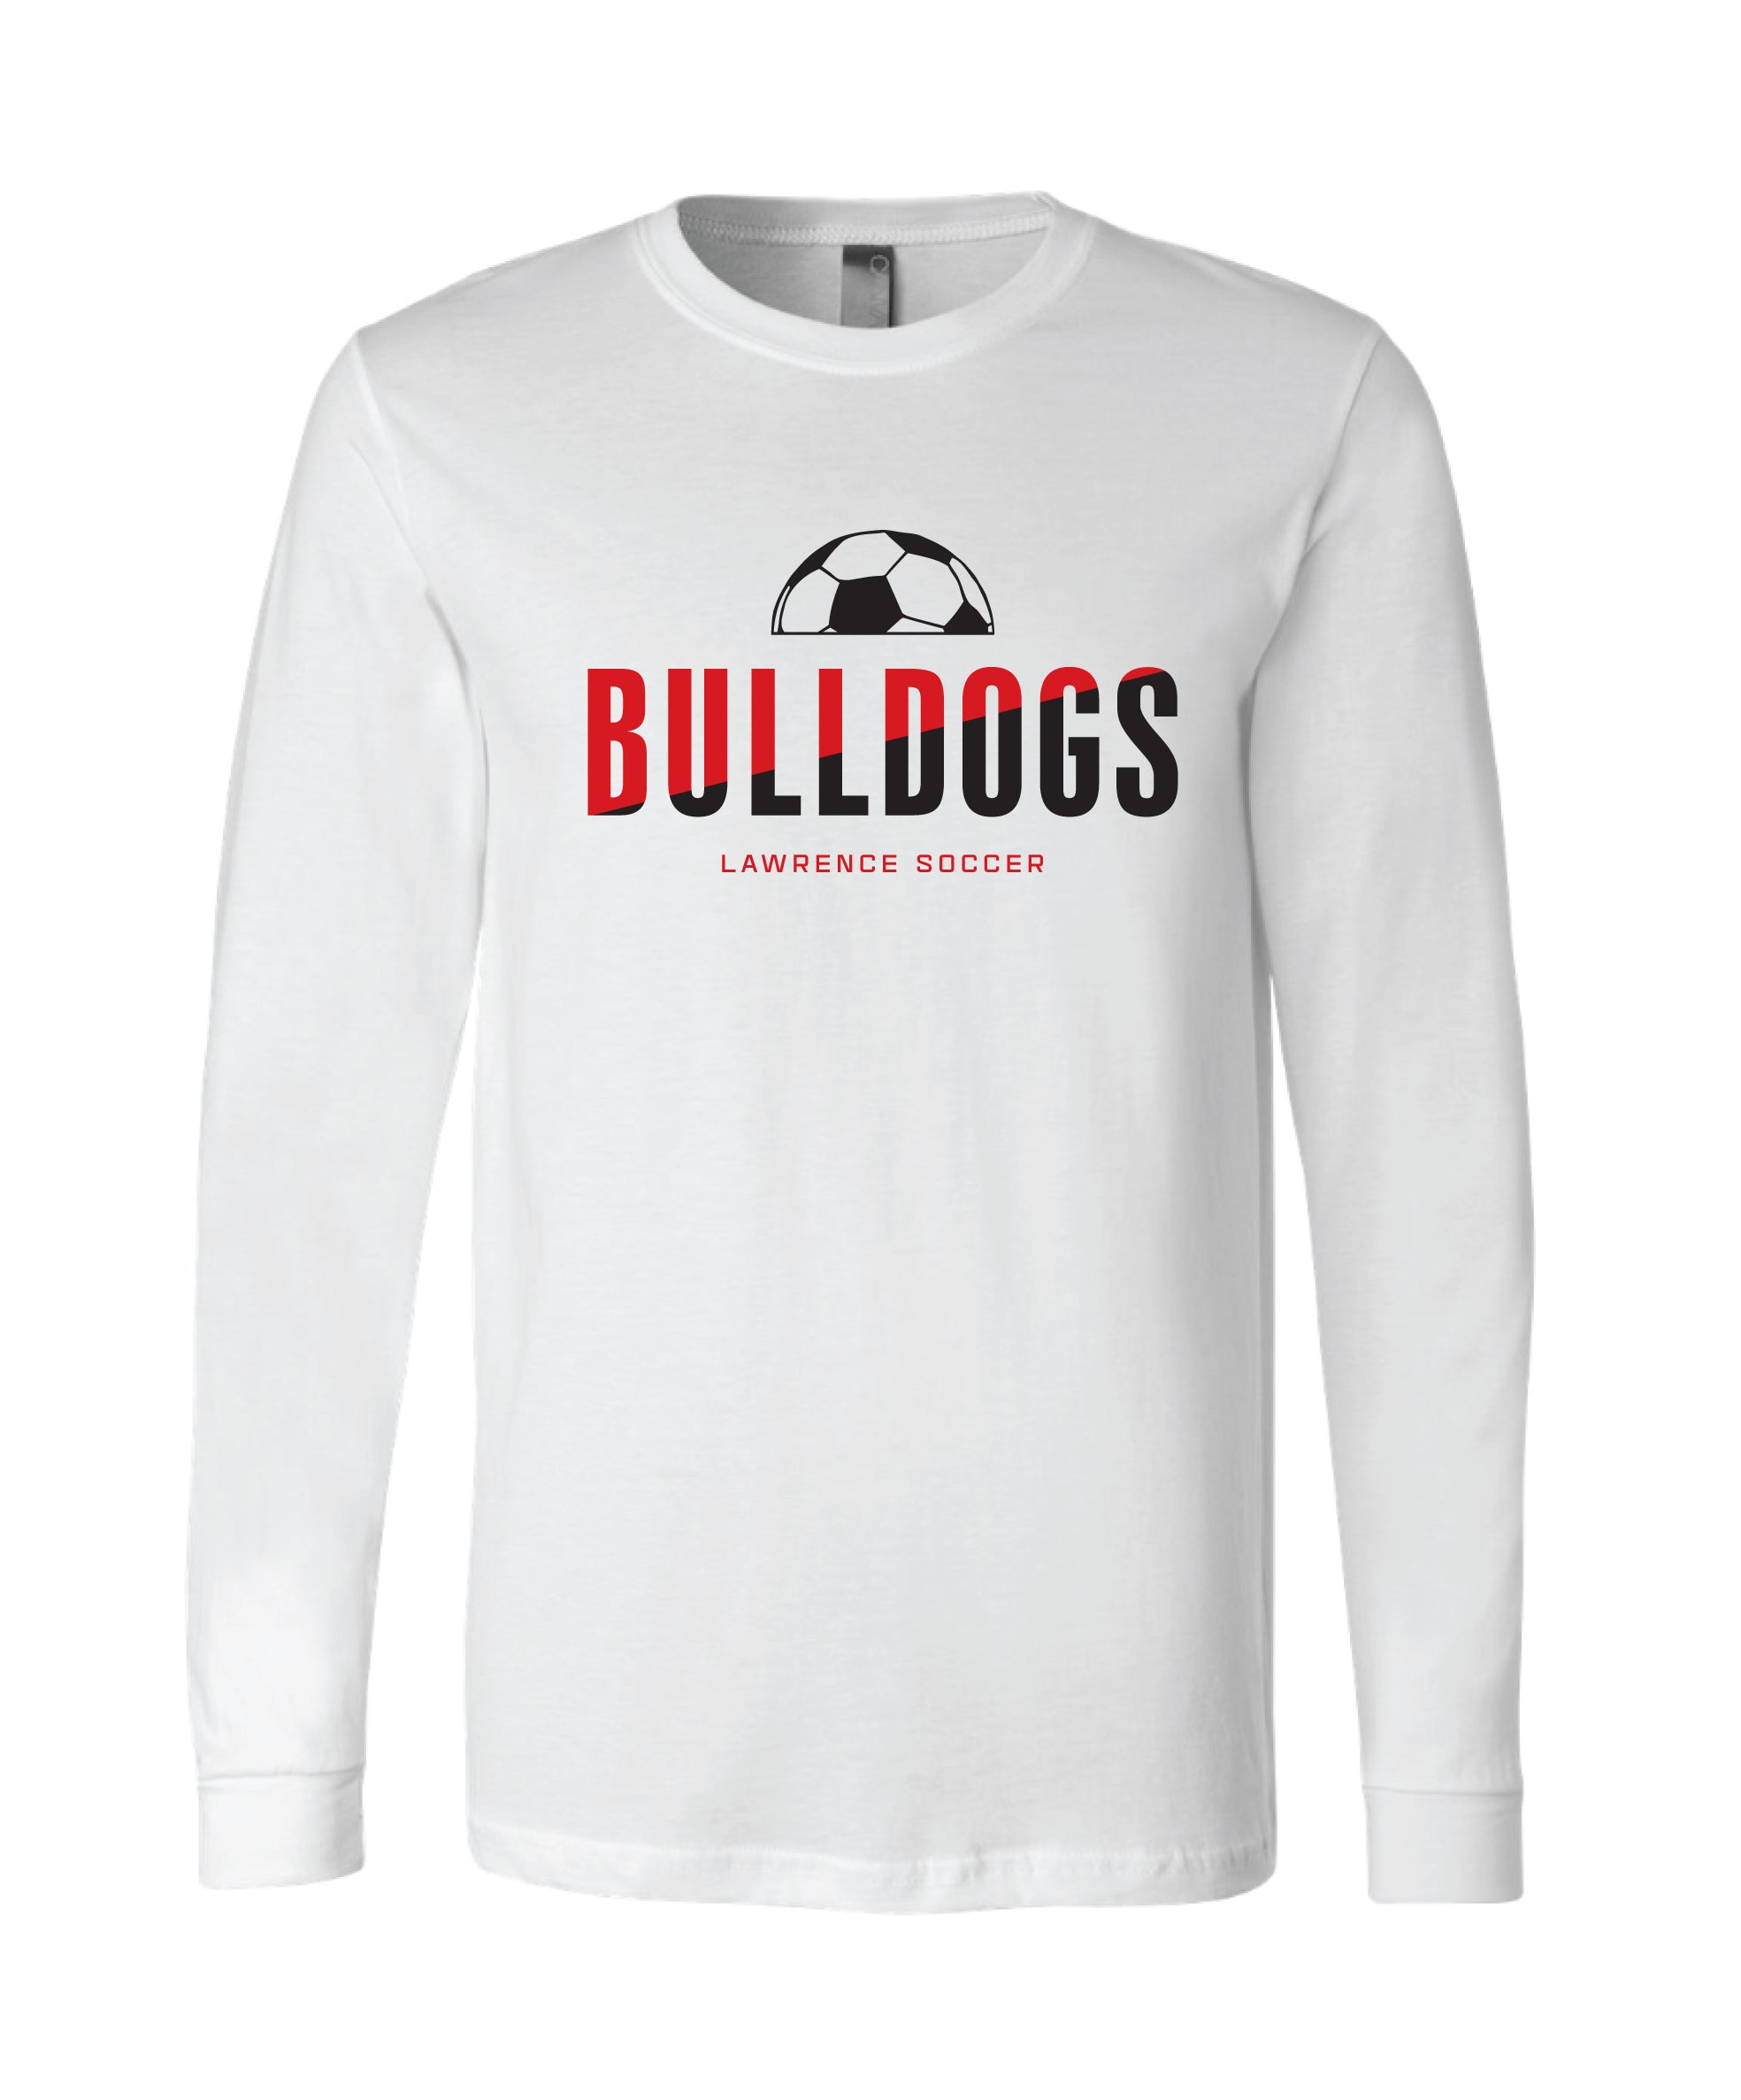 Bulldogs Long Sleeve White Shirt - Adult and Youth